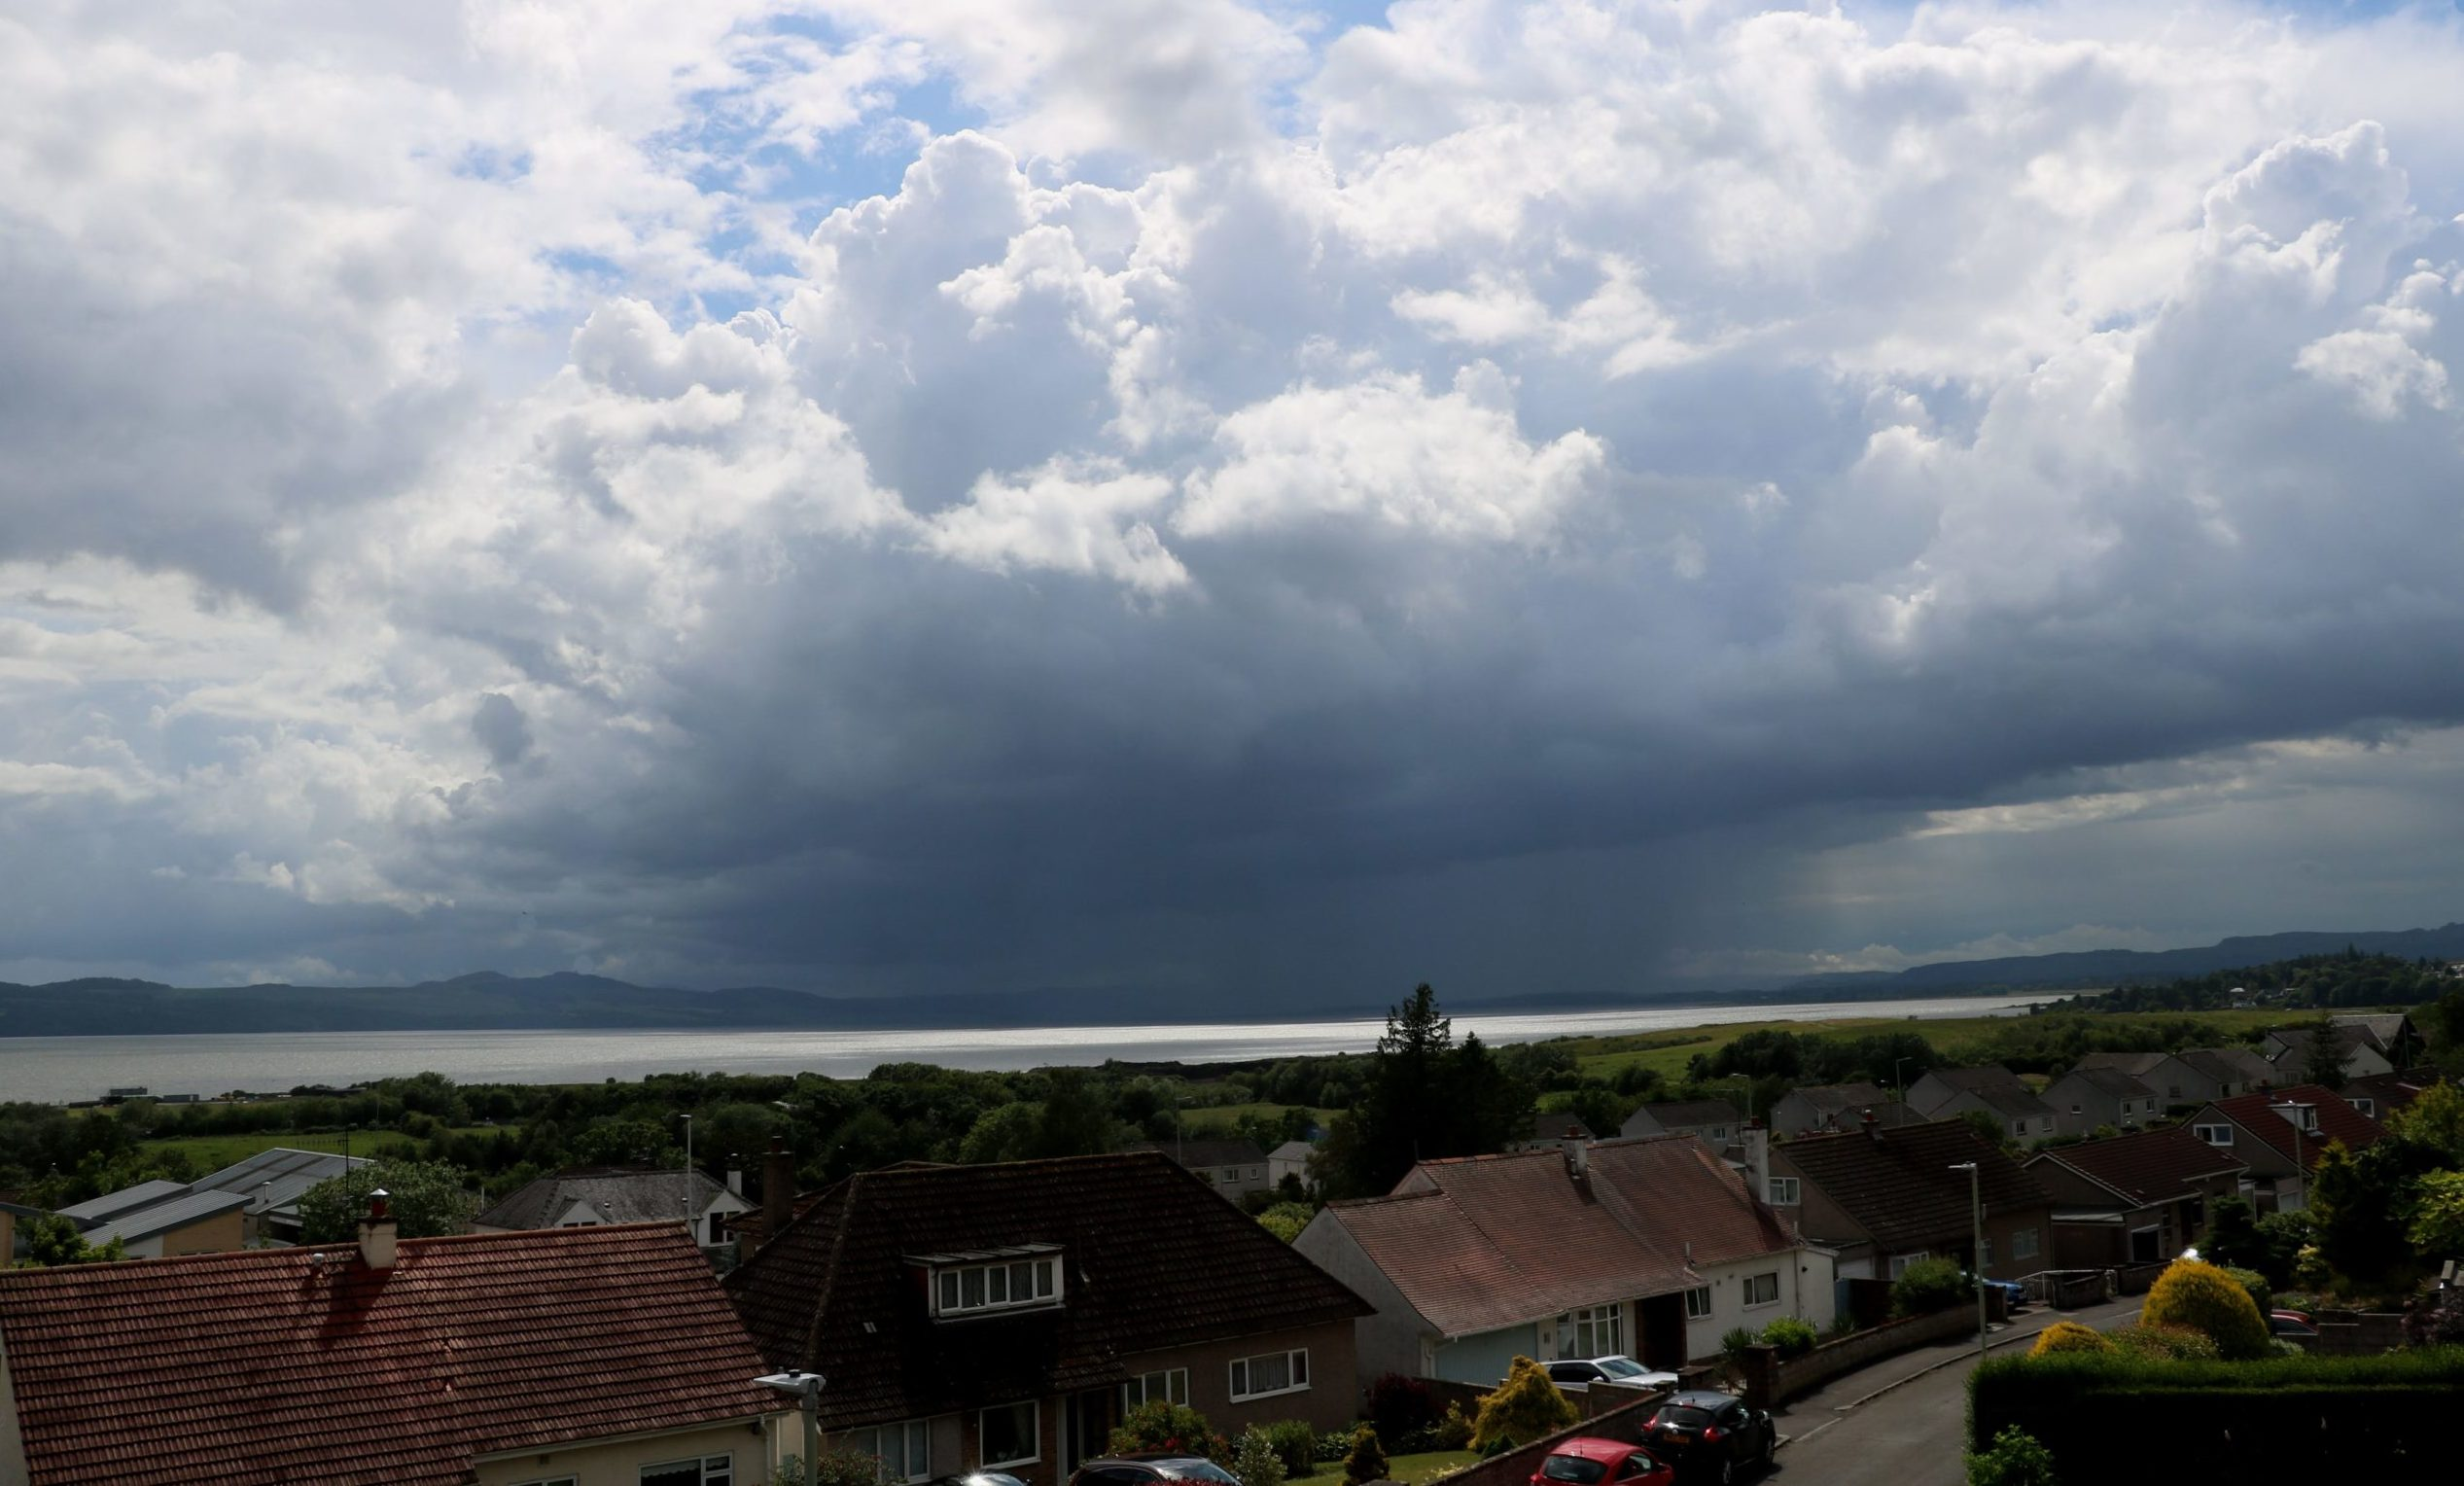 Thunderstorm heading up the Tay towards Dundee on June 21 2020.